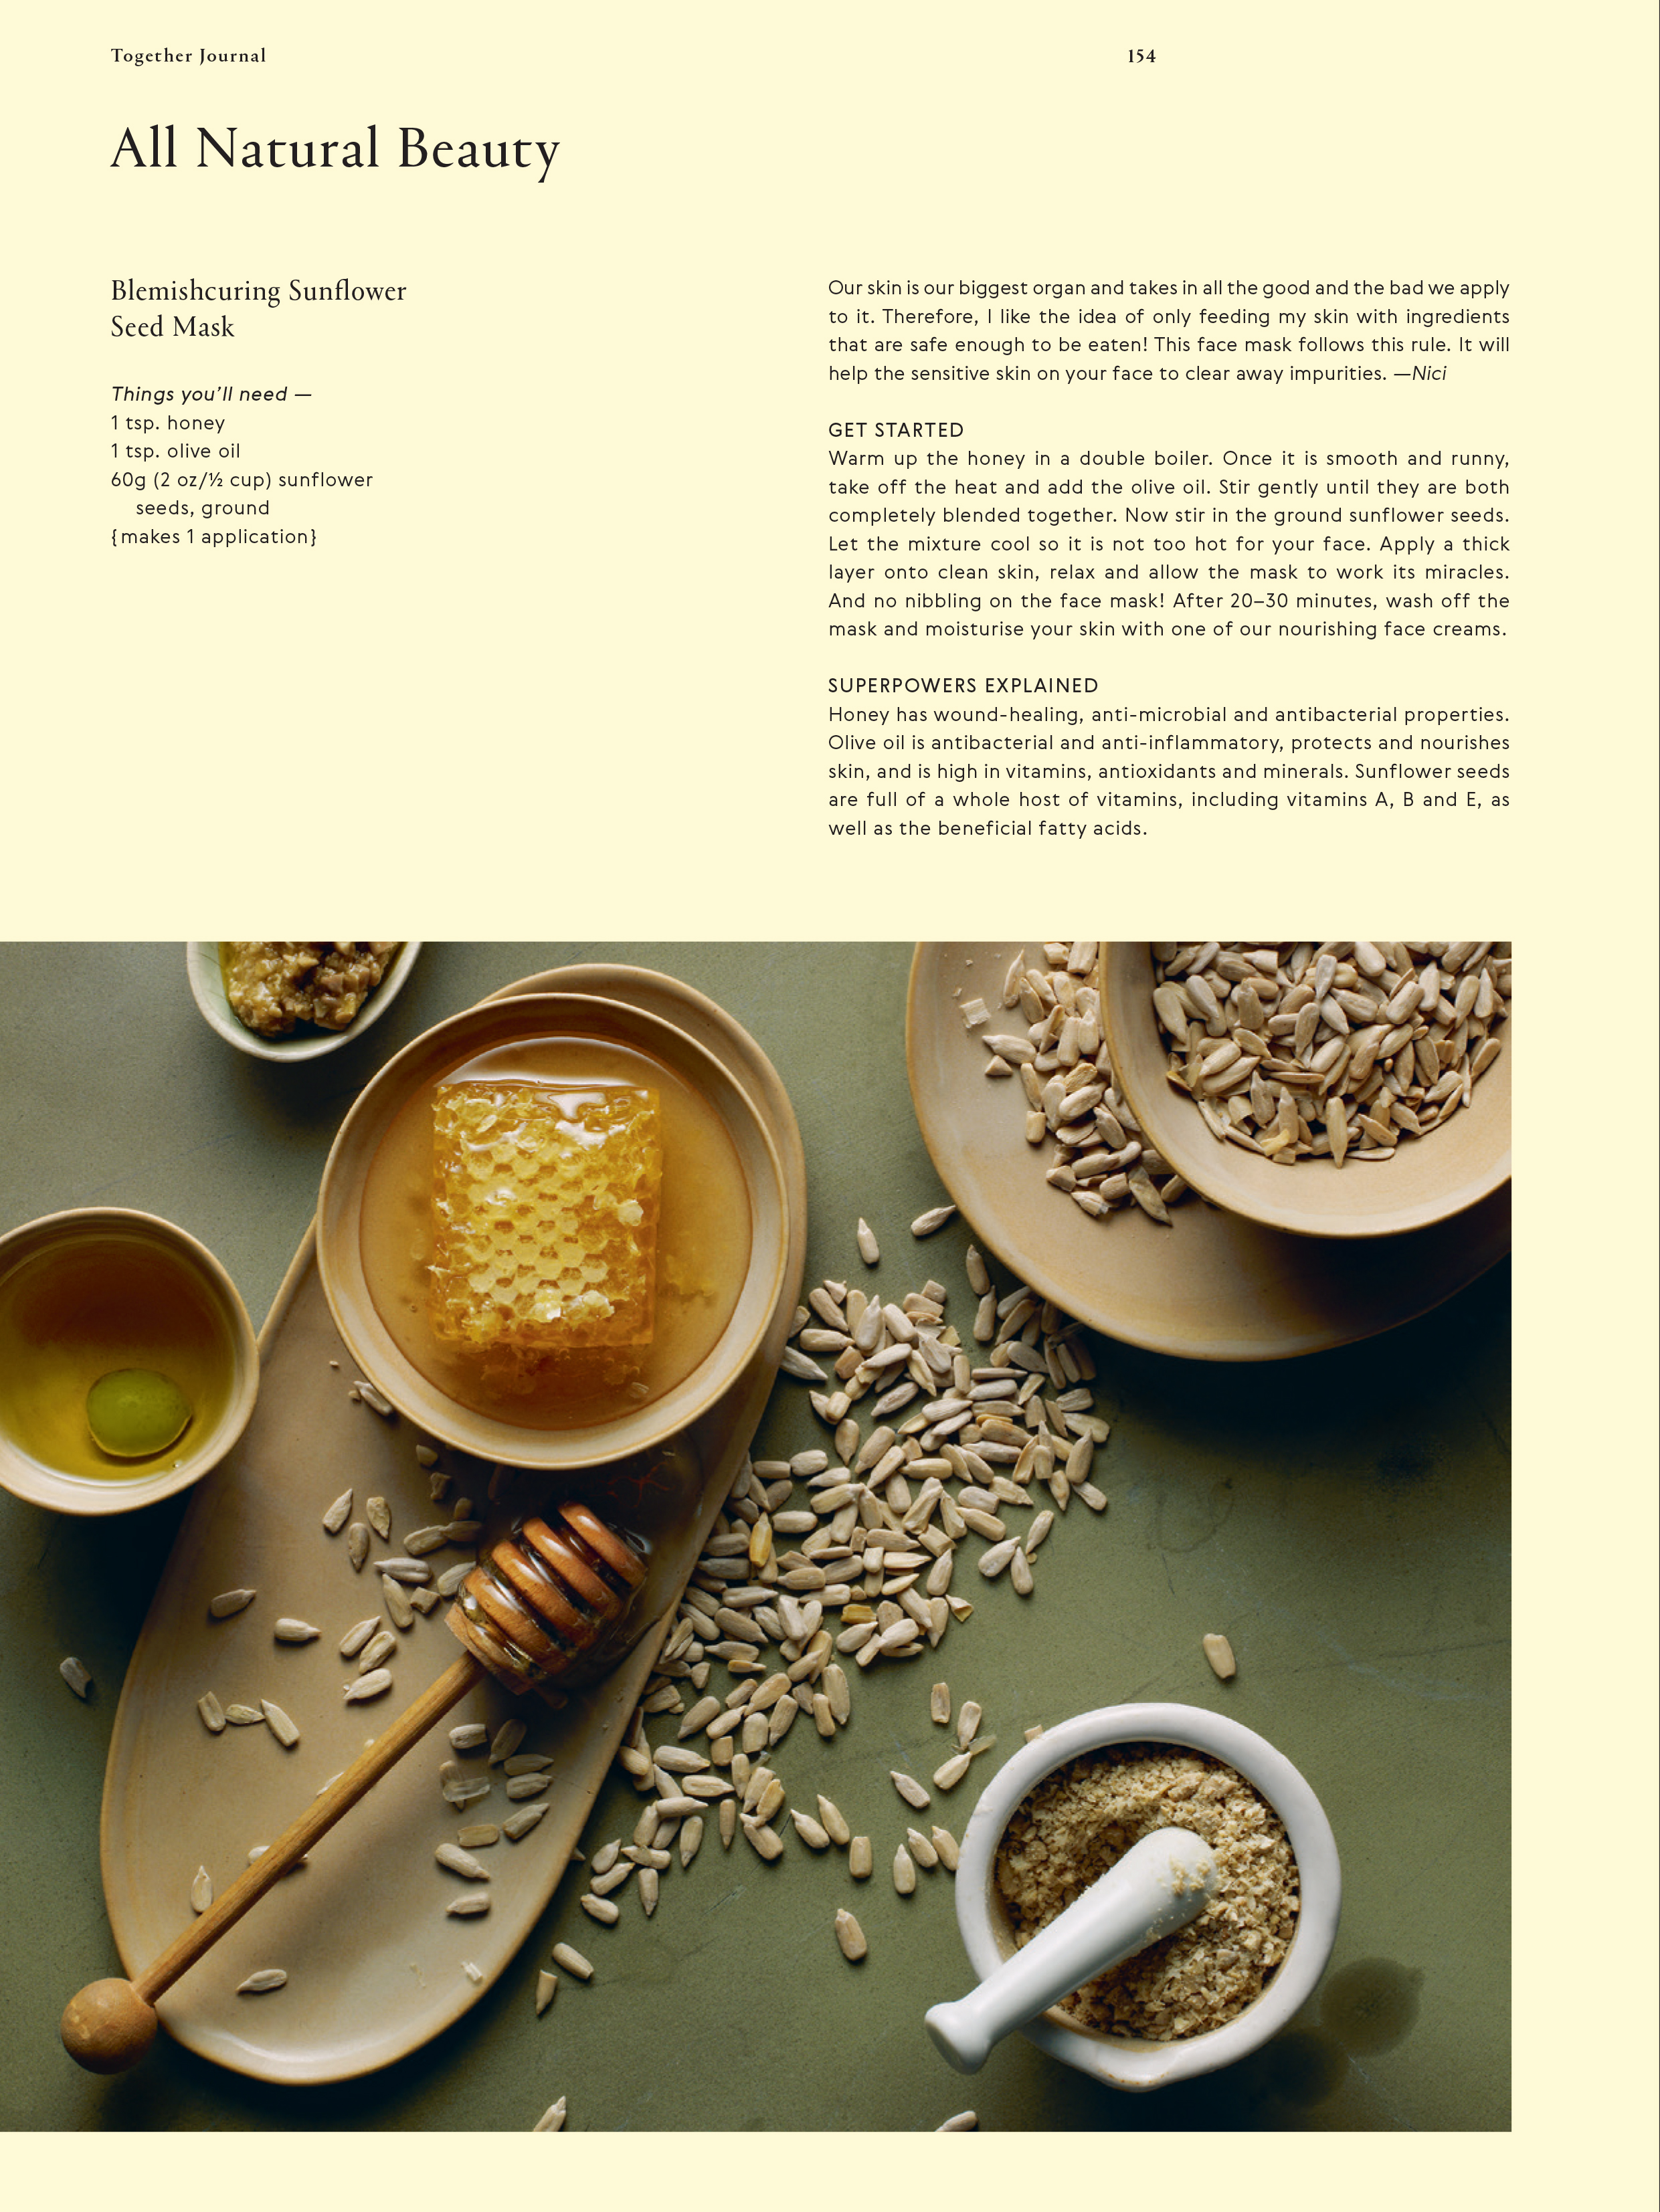 Categories: Food + Drink-All Natural Beauty - Issue 5